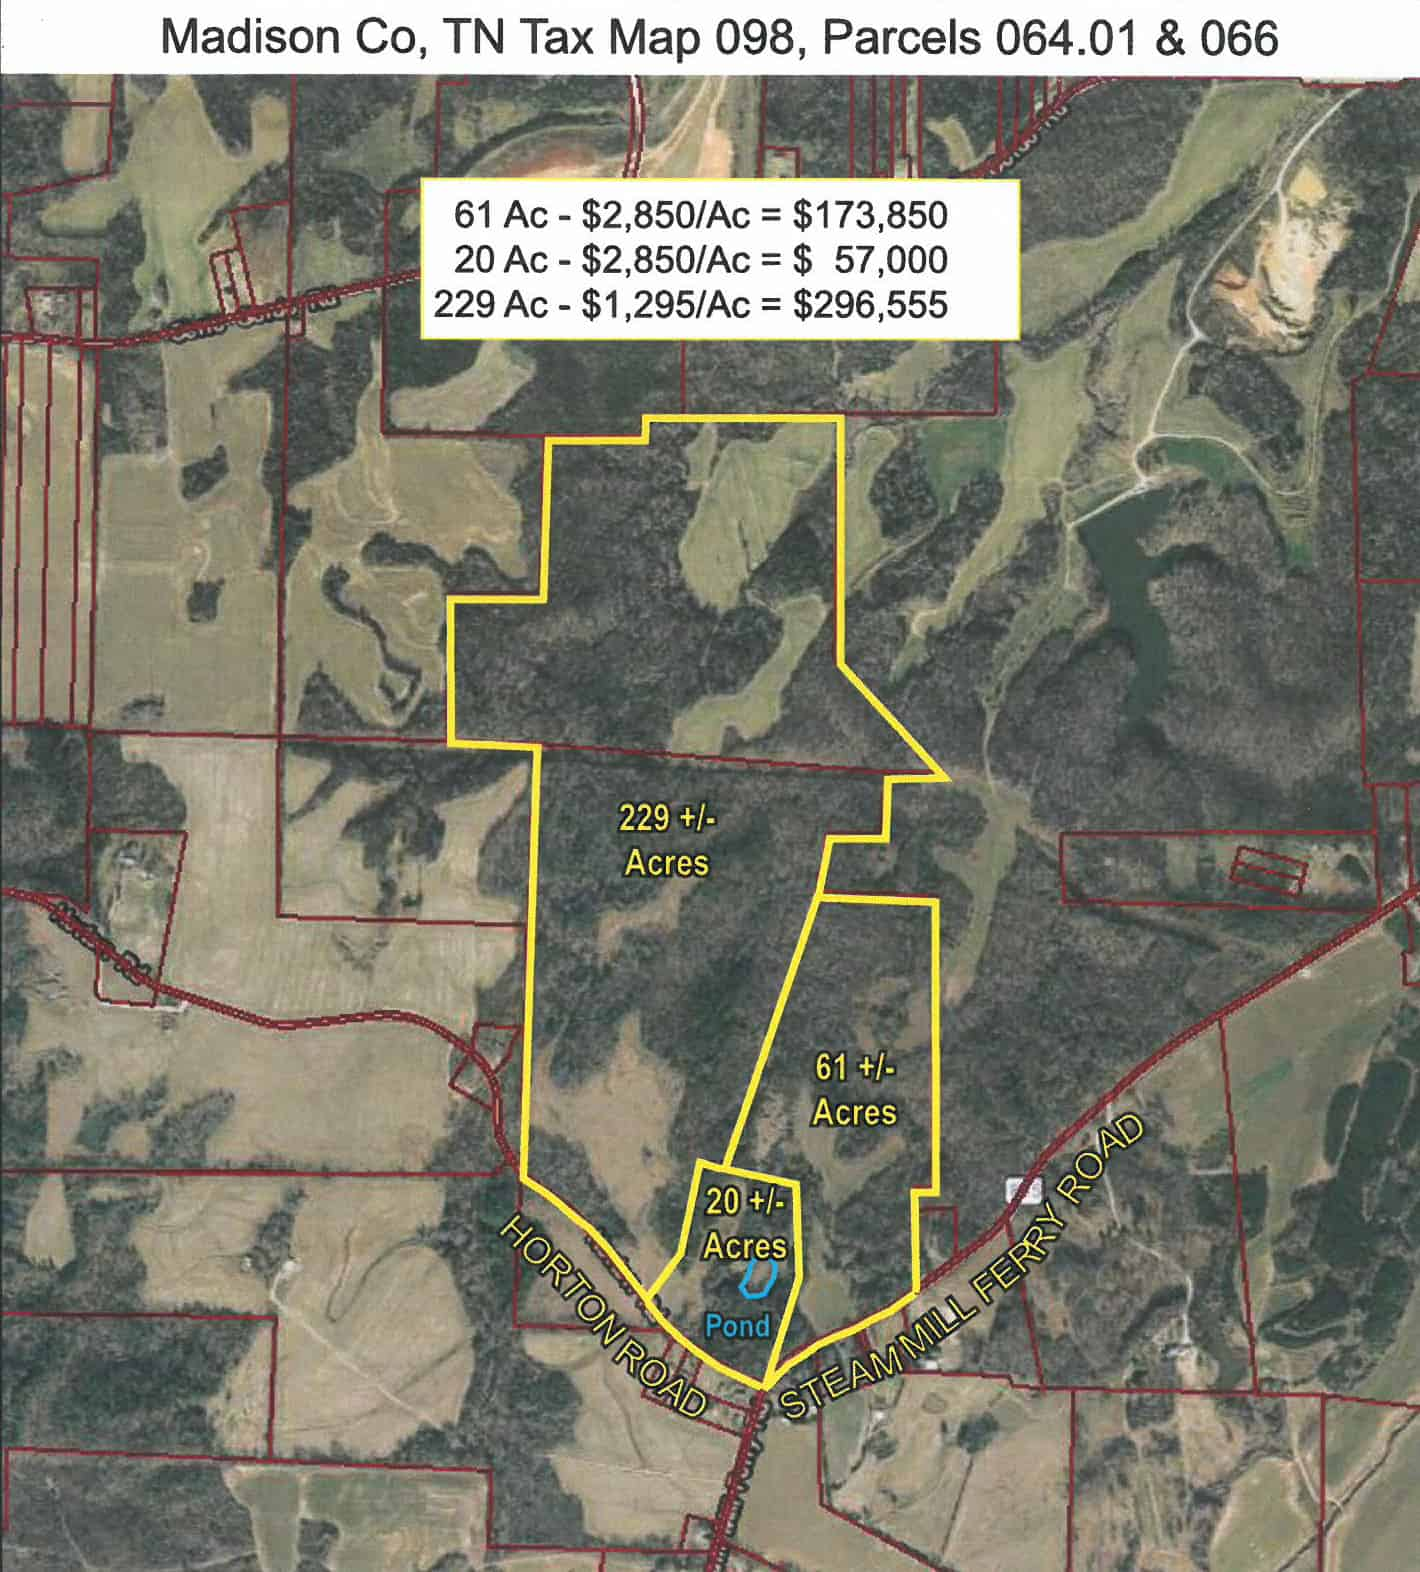 Steam Mill Ferry Road – 61+/- Acres